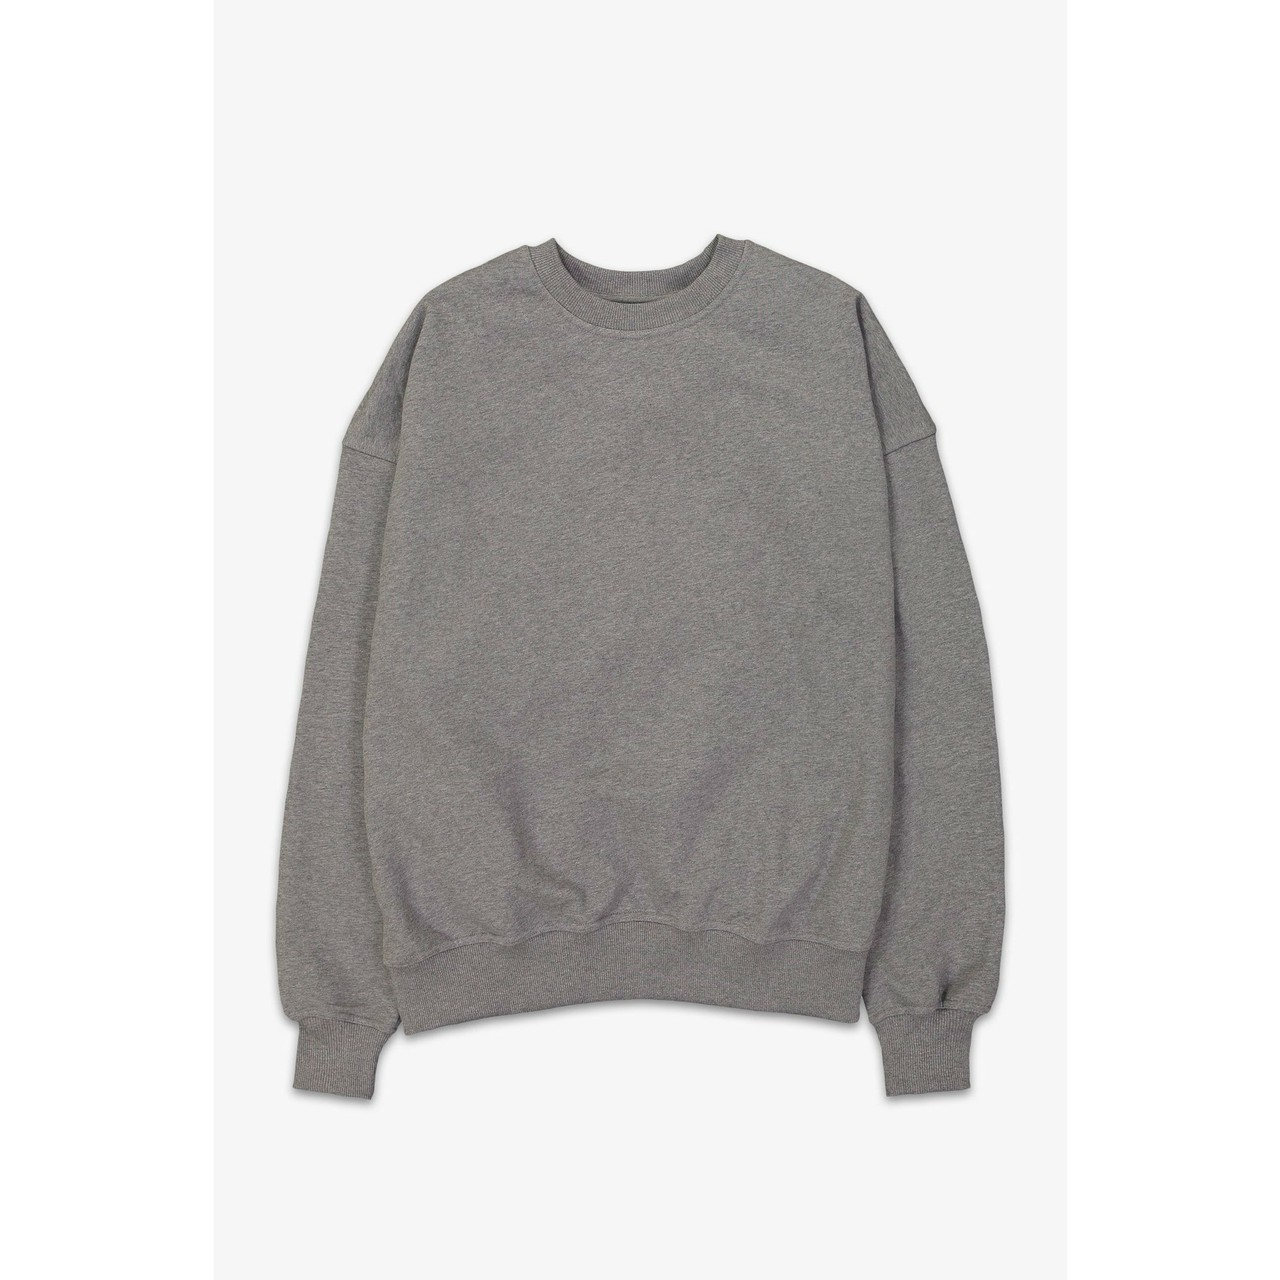 Coltesse Sador Sweat Shirt in Heather Grey